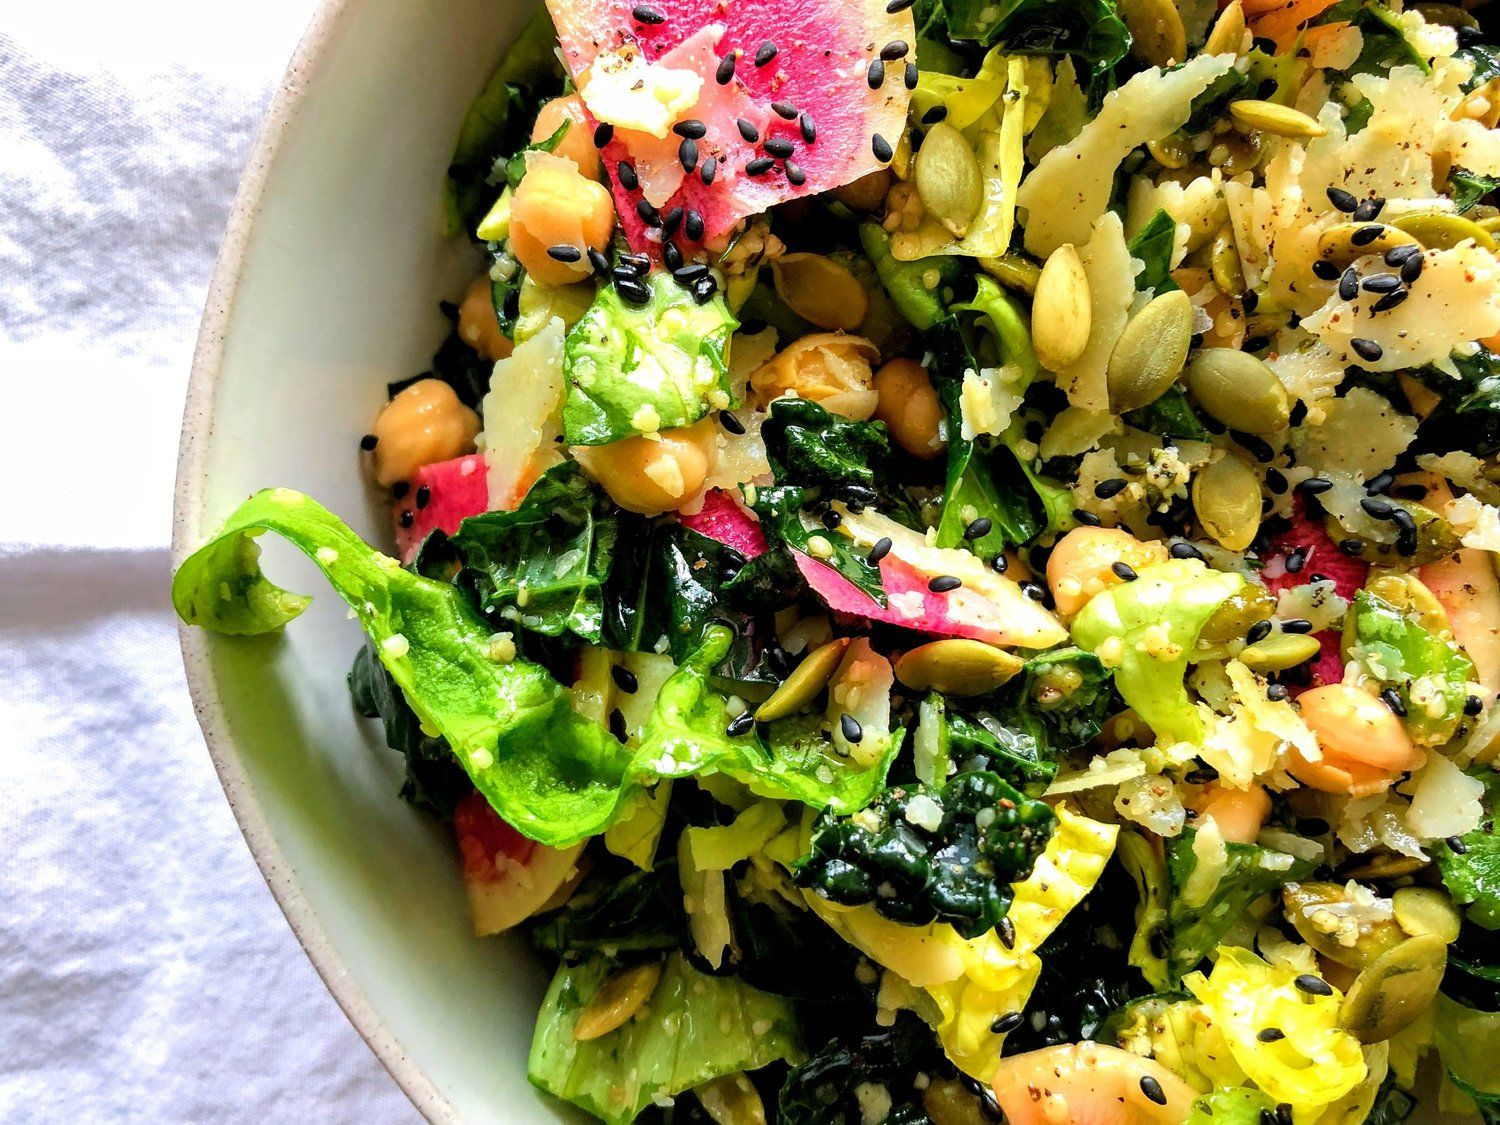 Kale + Soft Lettuce Salad with Chickpeas, Radishes, Parm ...